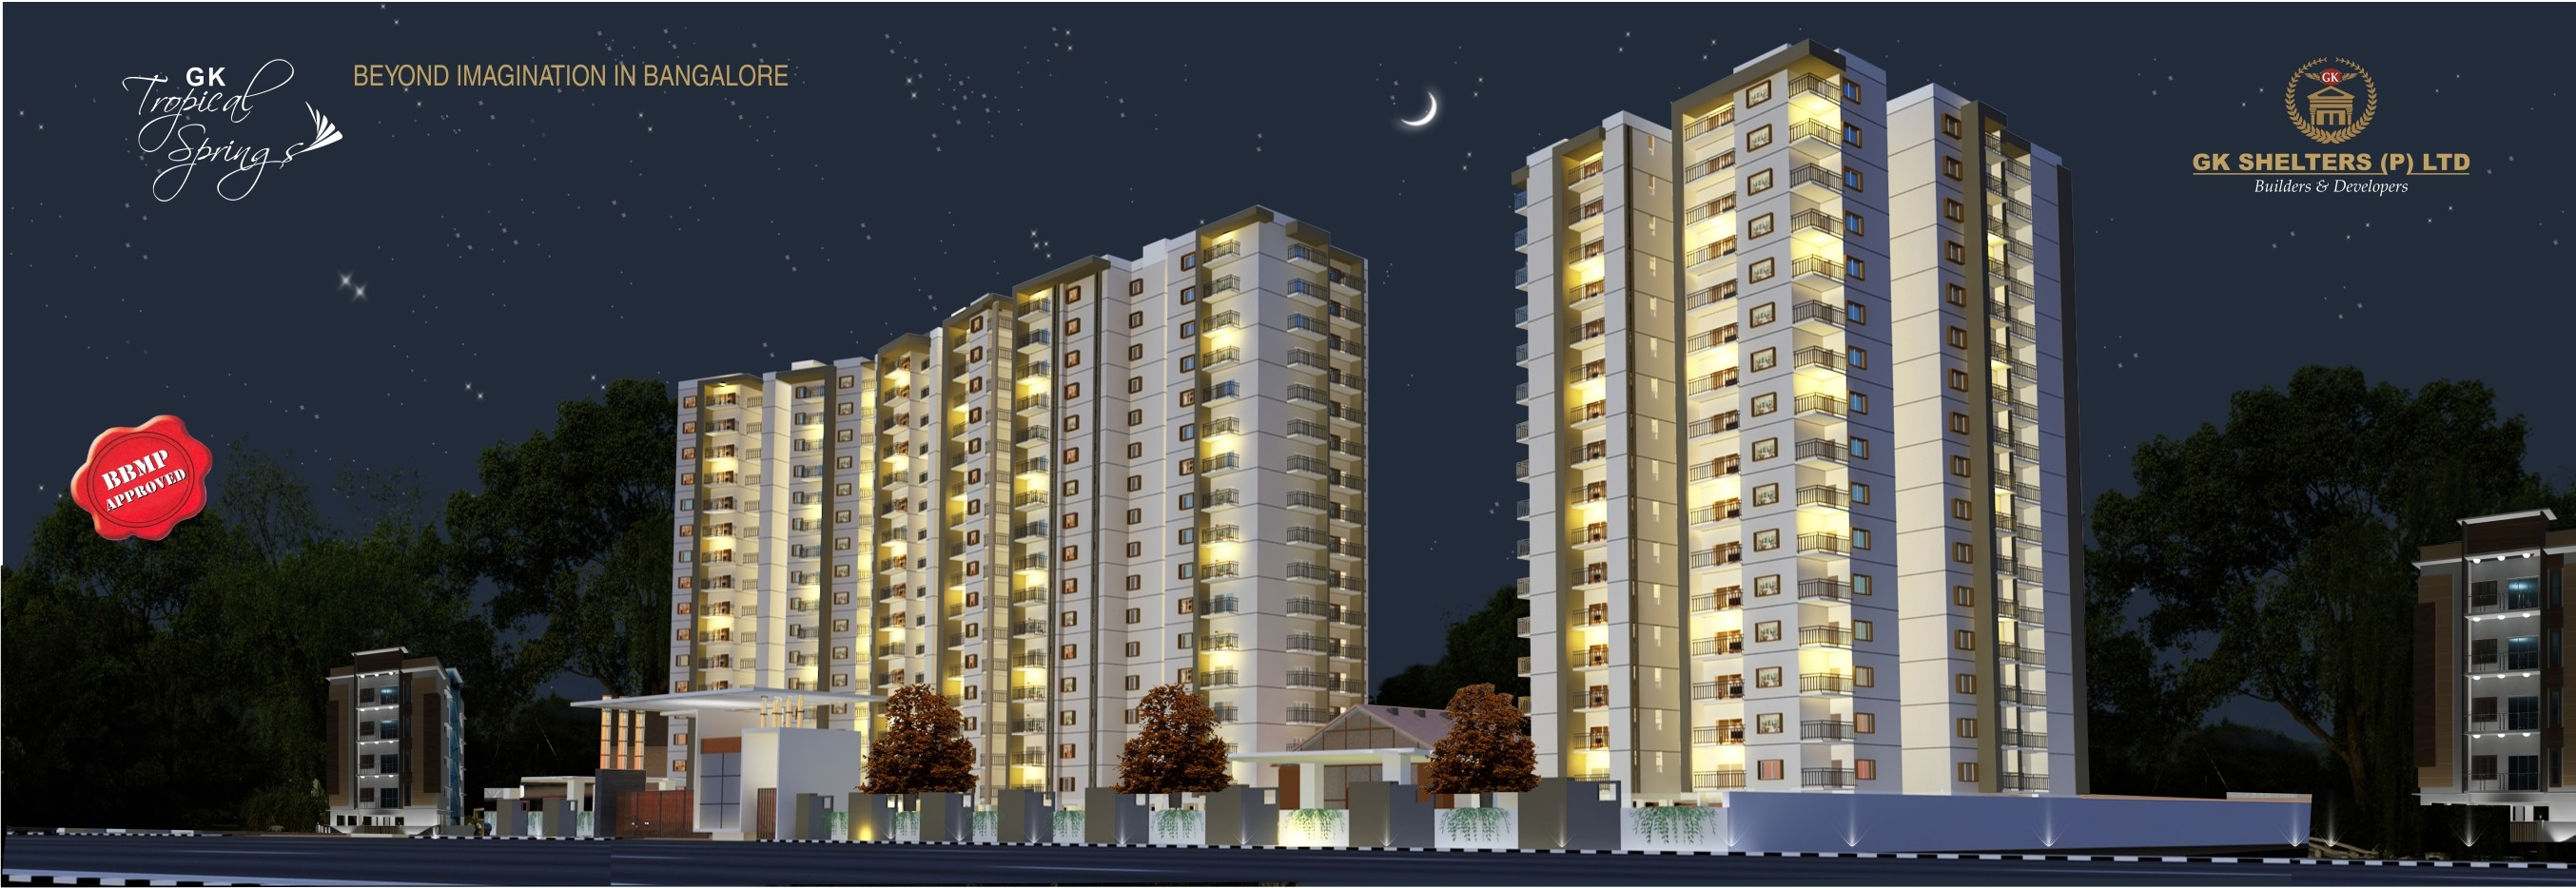 GK Shelters Private Limited - Bangalore Image